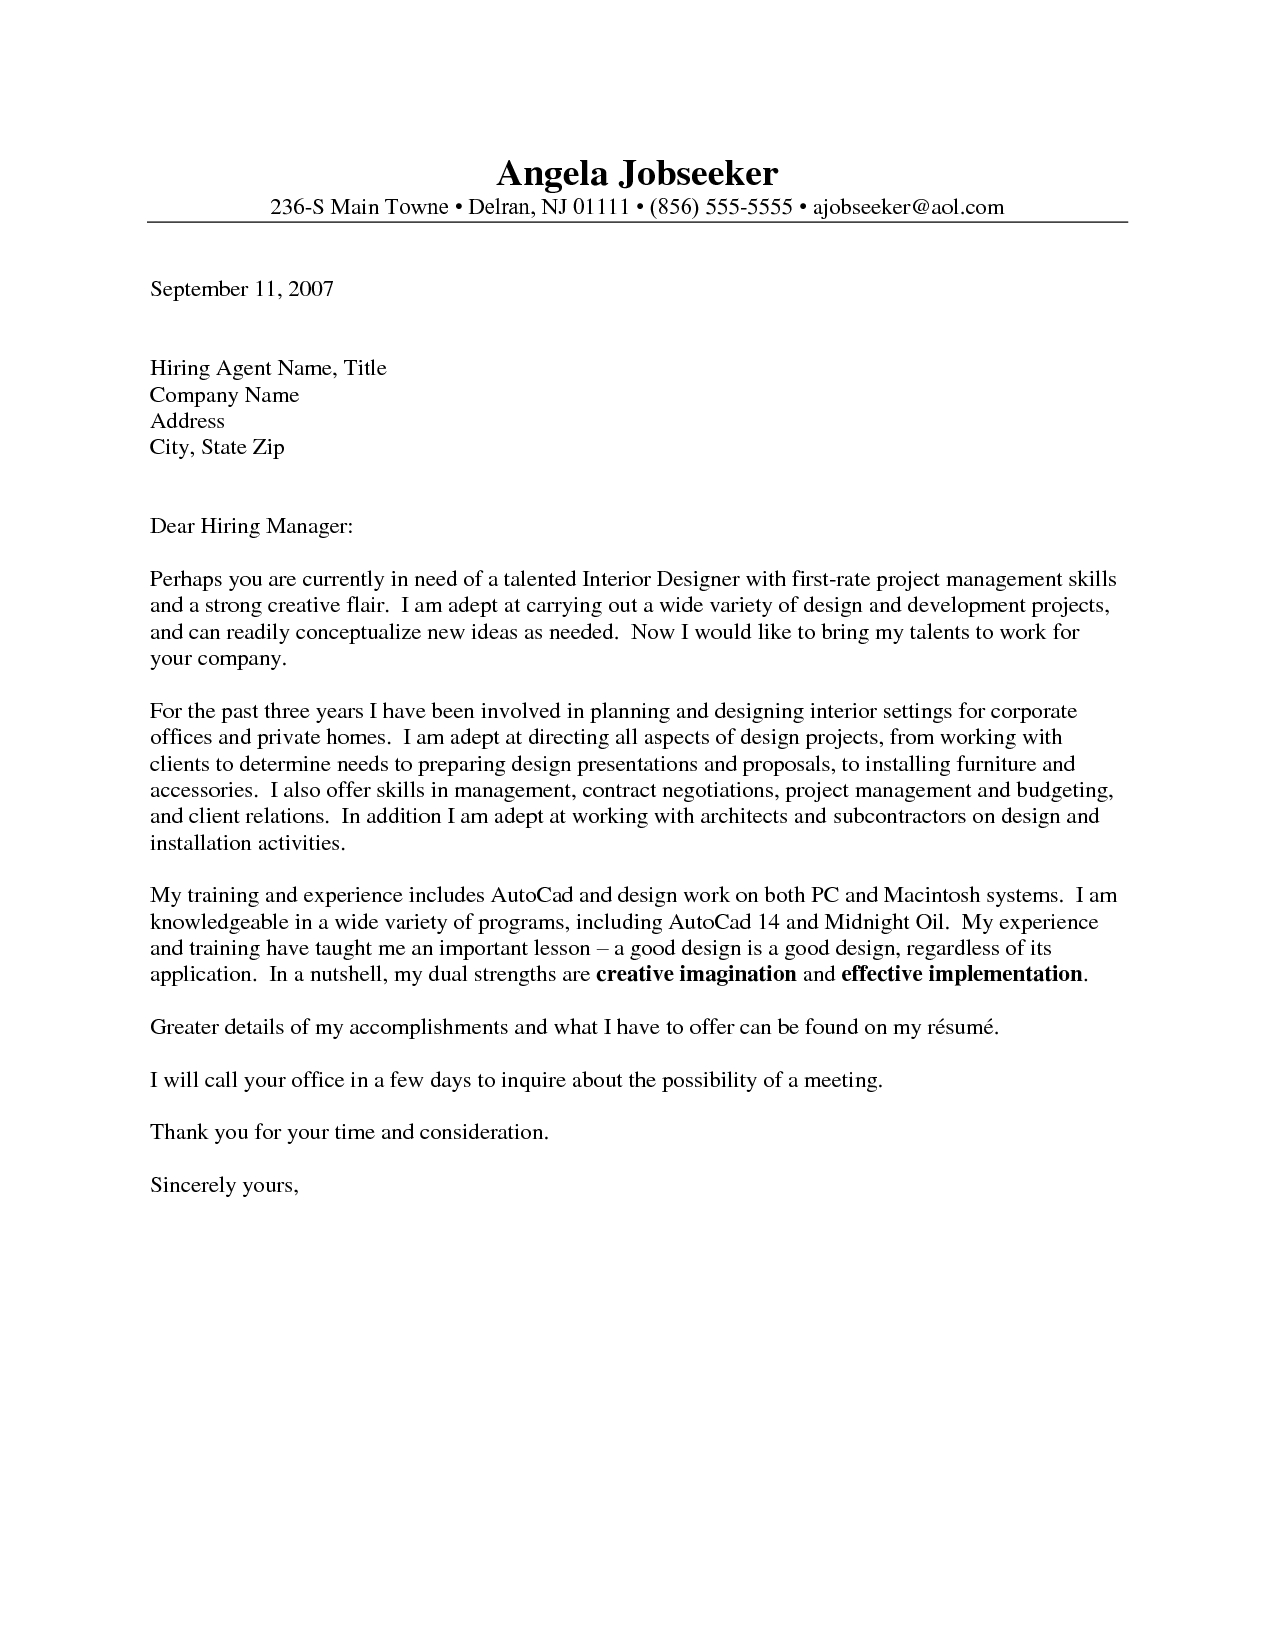 Job Application Letter Template Pdf - Outstanding Cover Letter Examples